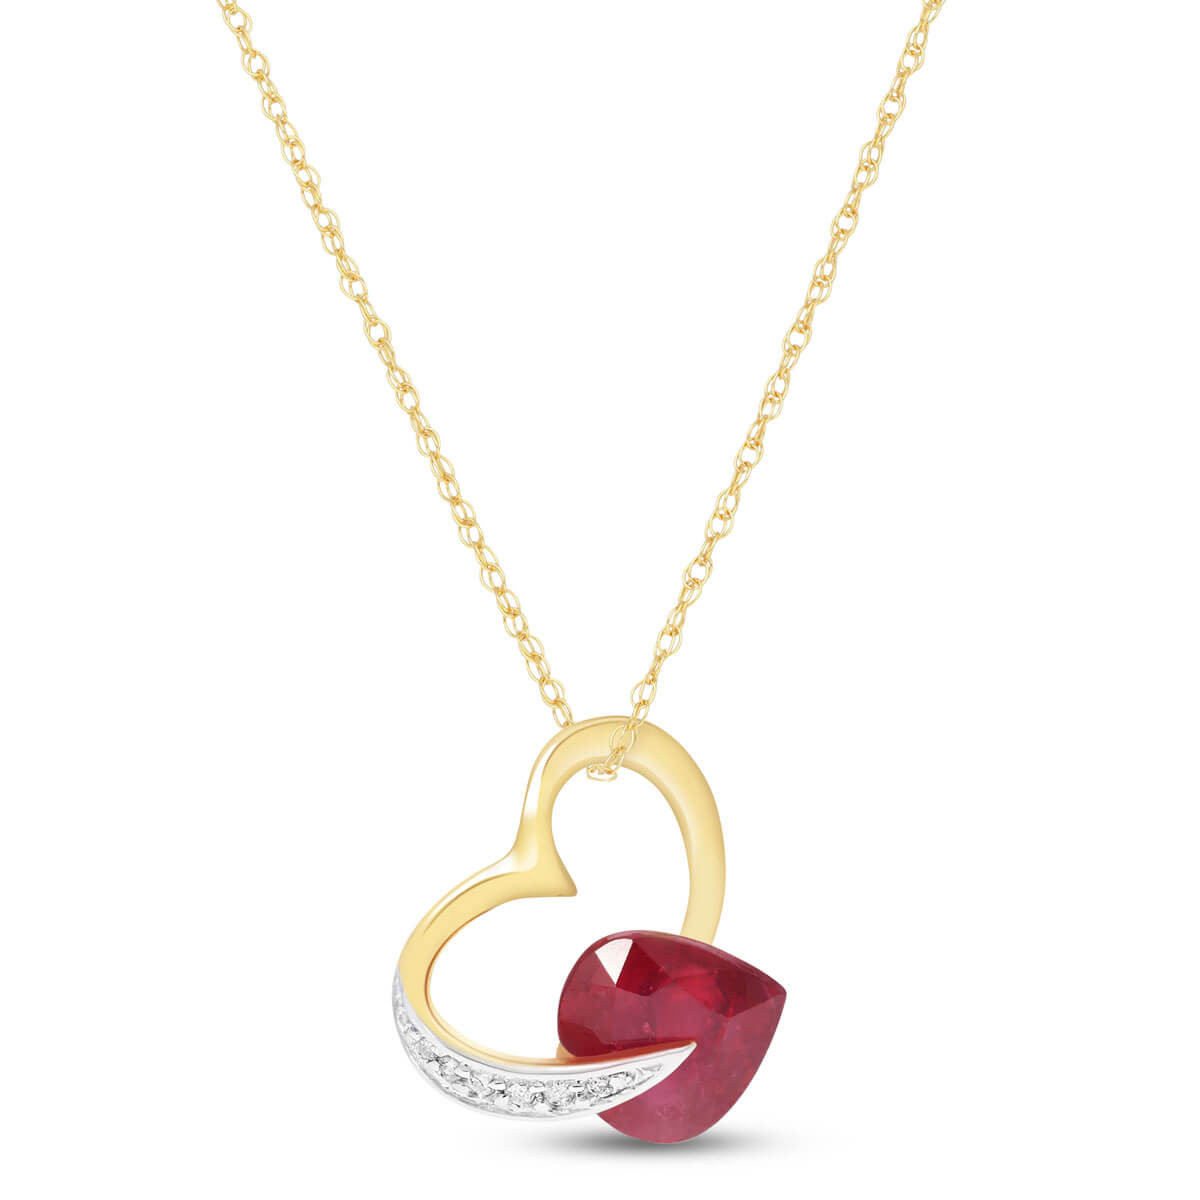 Ruby & Diamond Heart Pendant Necklace in 9ct Gold